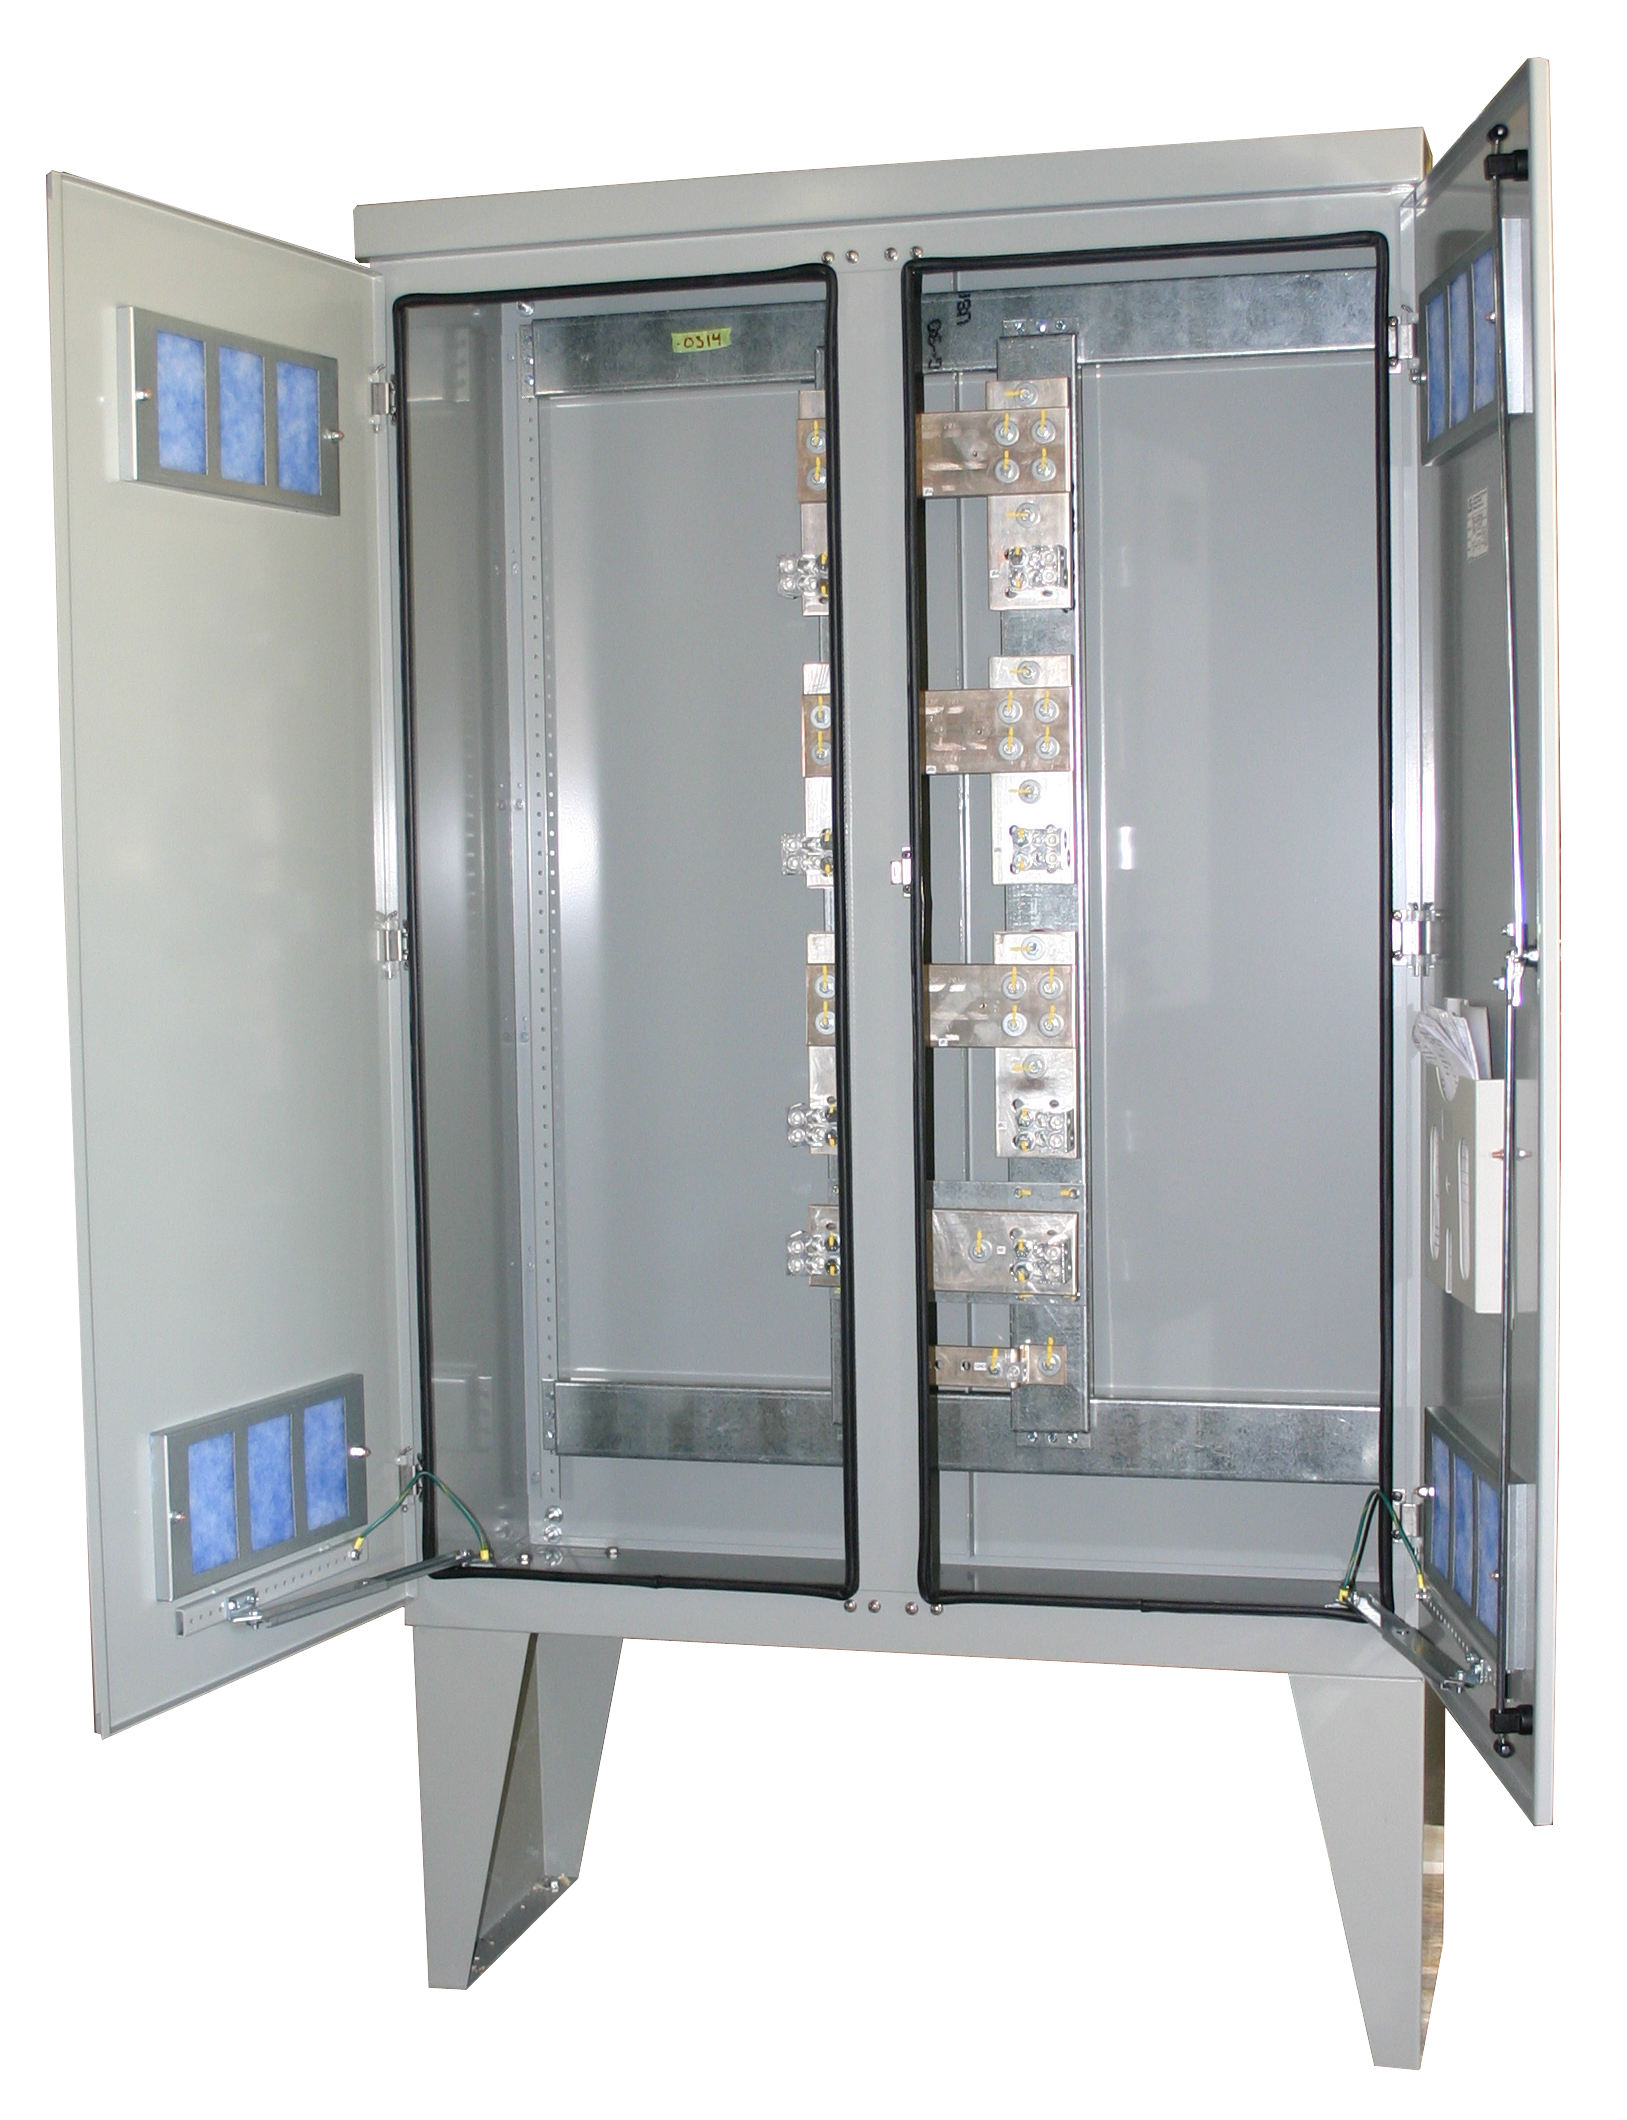 800 to 2000 Amp CT Cabinet Manufacturer | Lake Shore ...